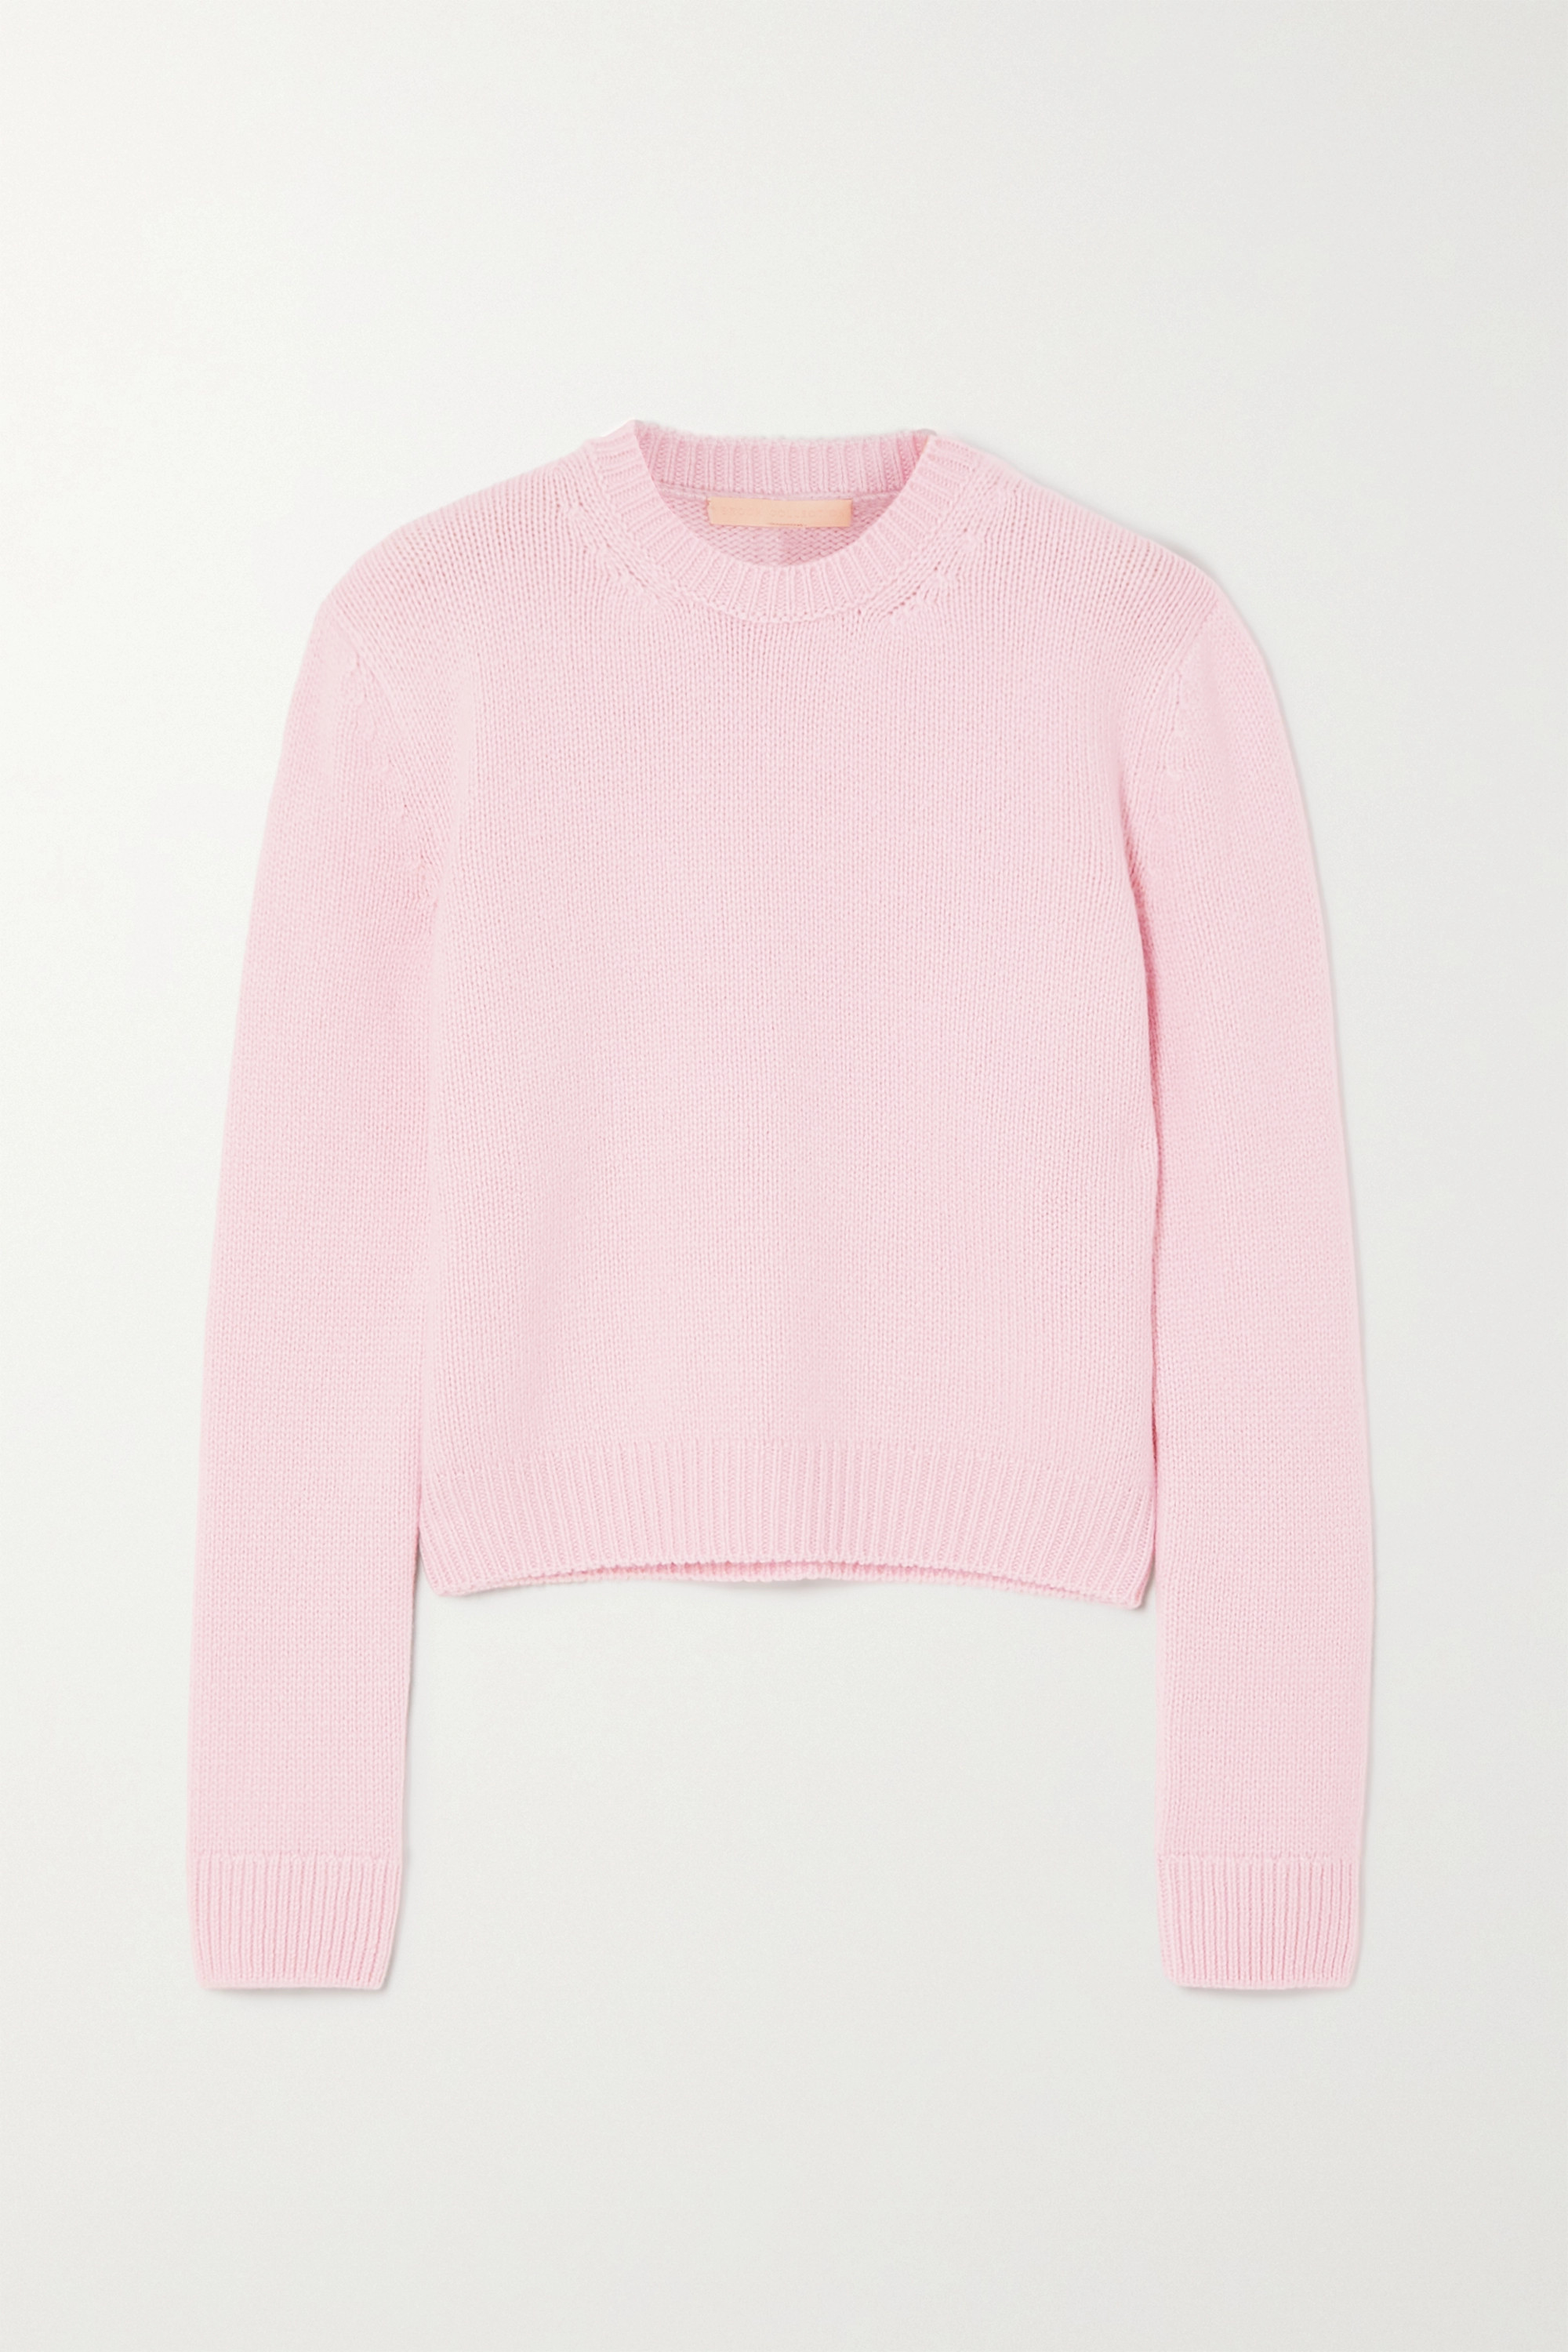 Brock Collection Cashmere sweater